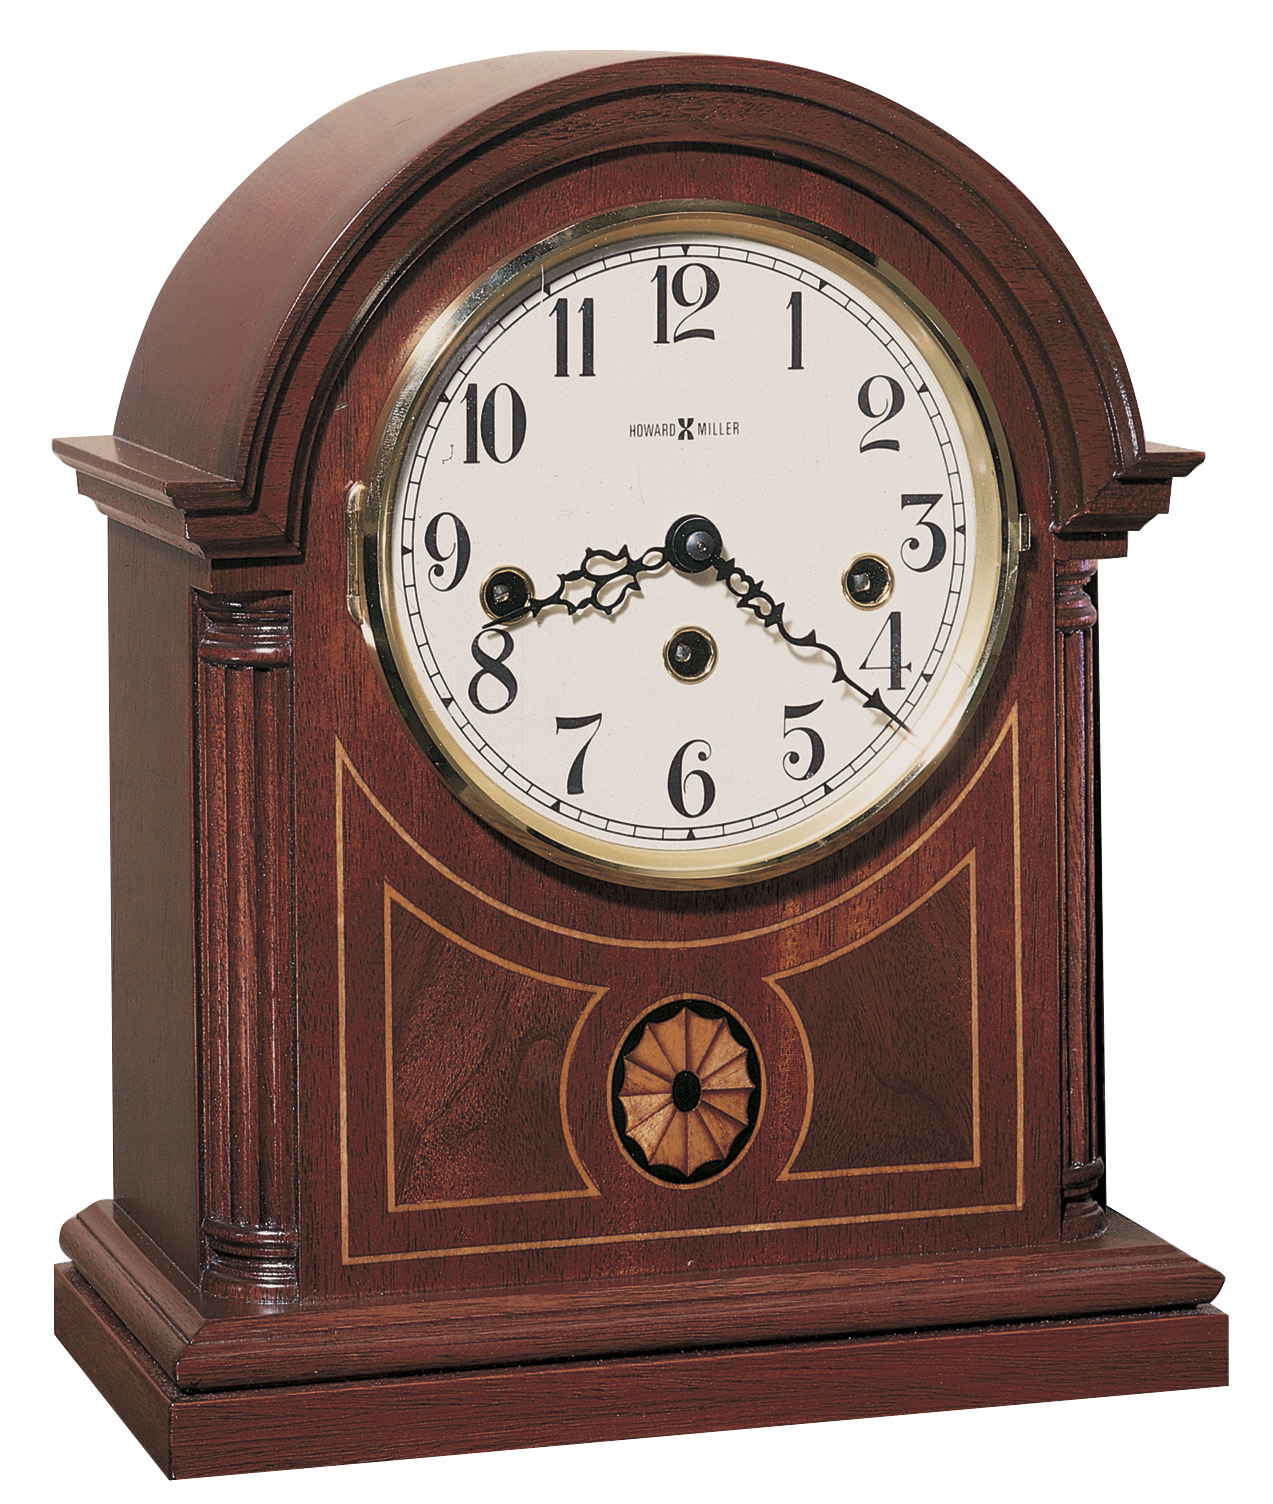 Howard Miller Clock Parts | Edinburgh Clock Works Co | Howard Miller Desk Clock